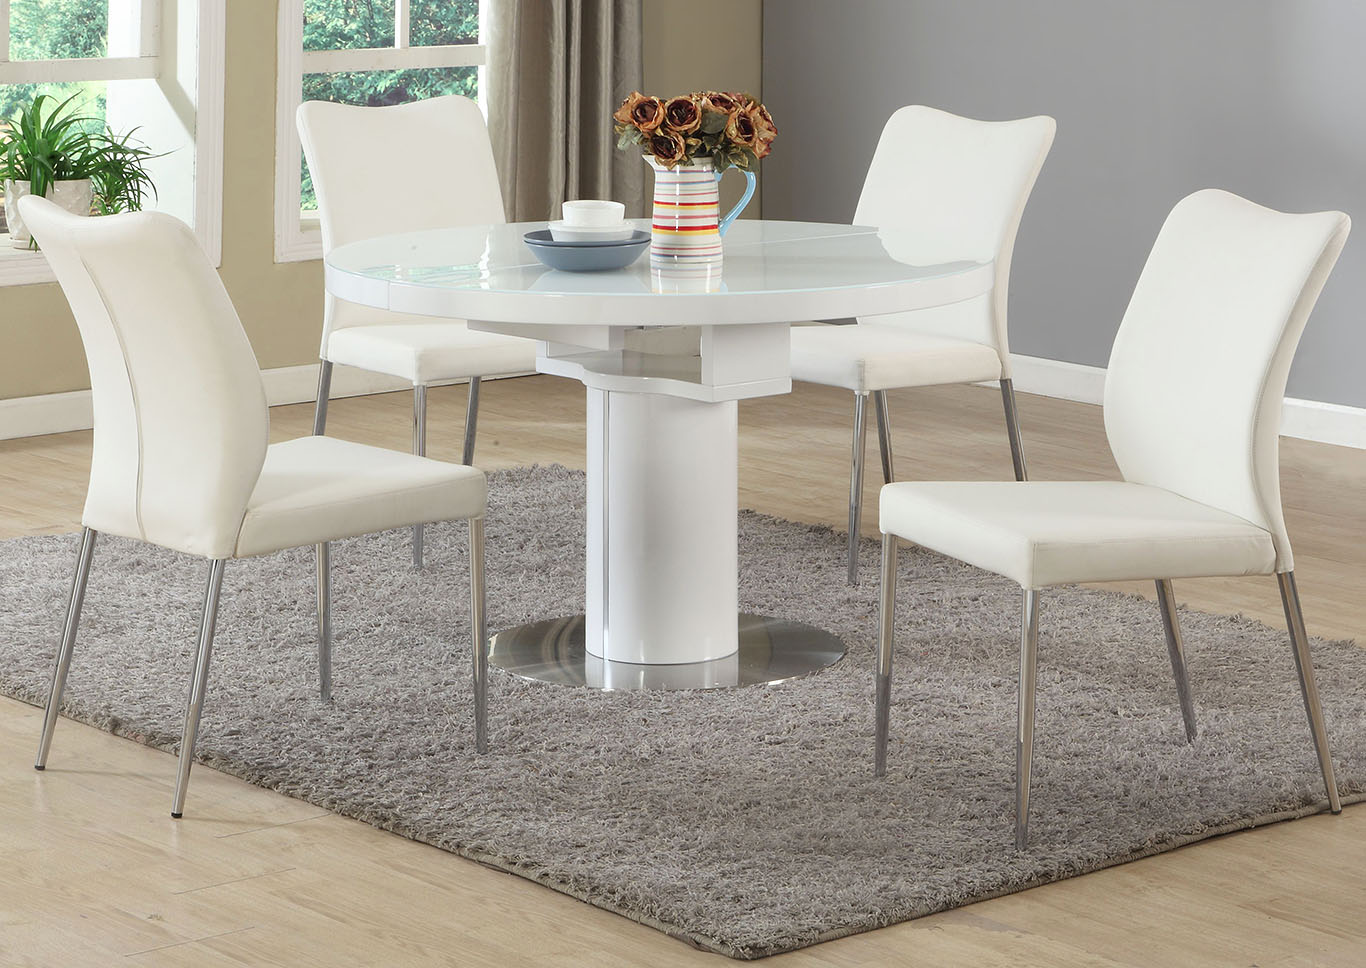 Nora White Dining Table w/4 Side Chairs,Chintaly Imports